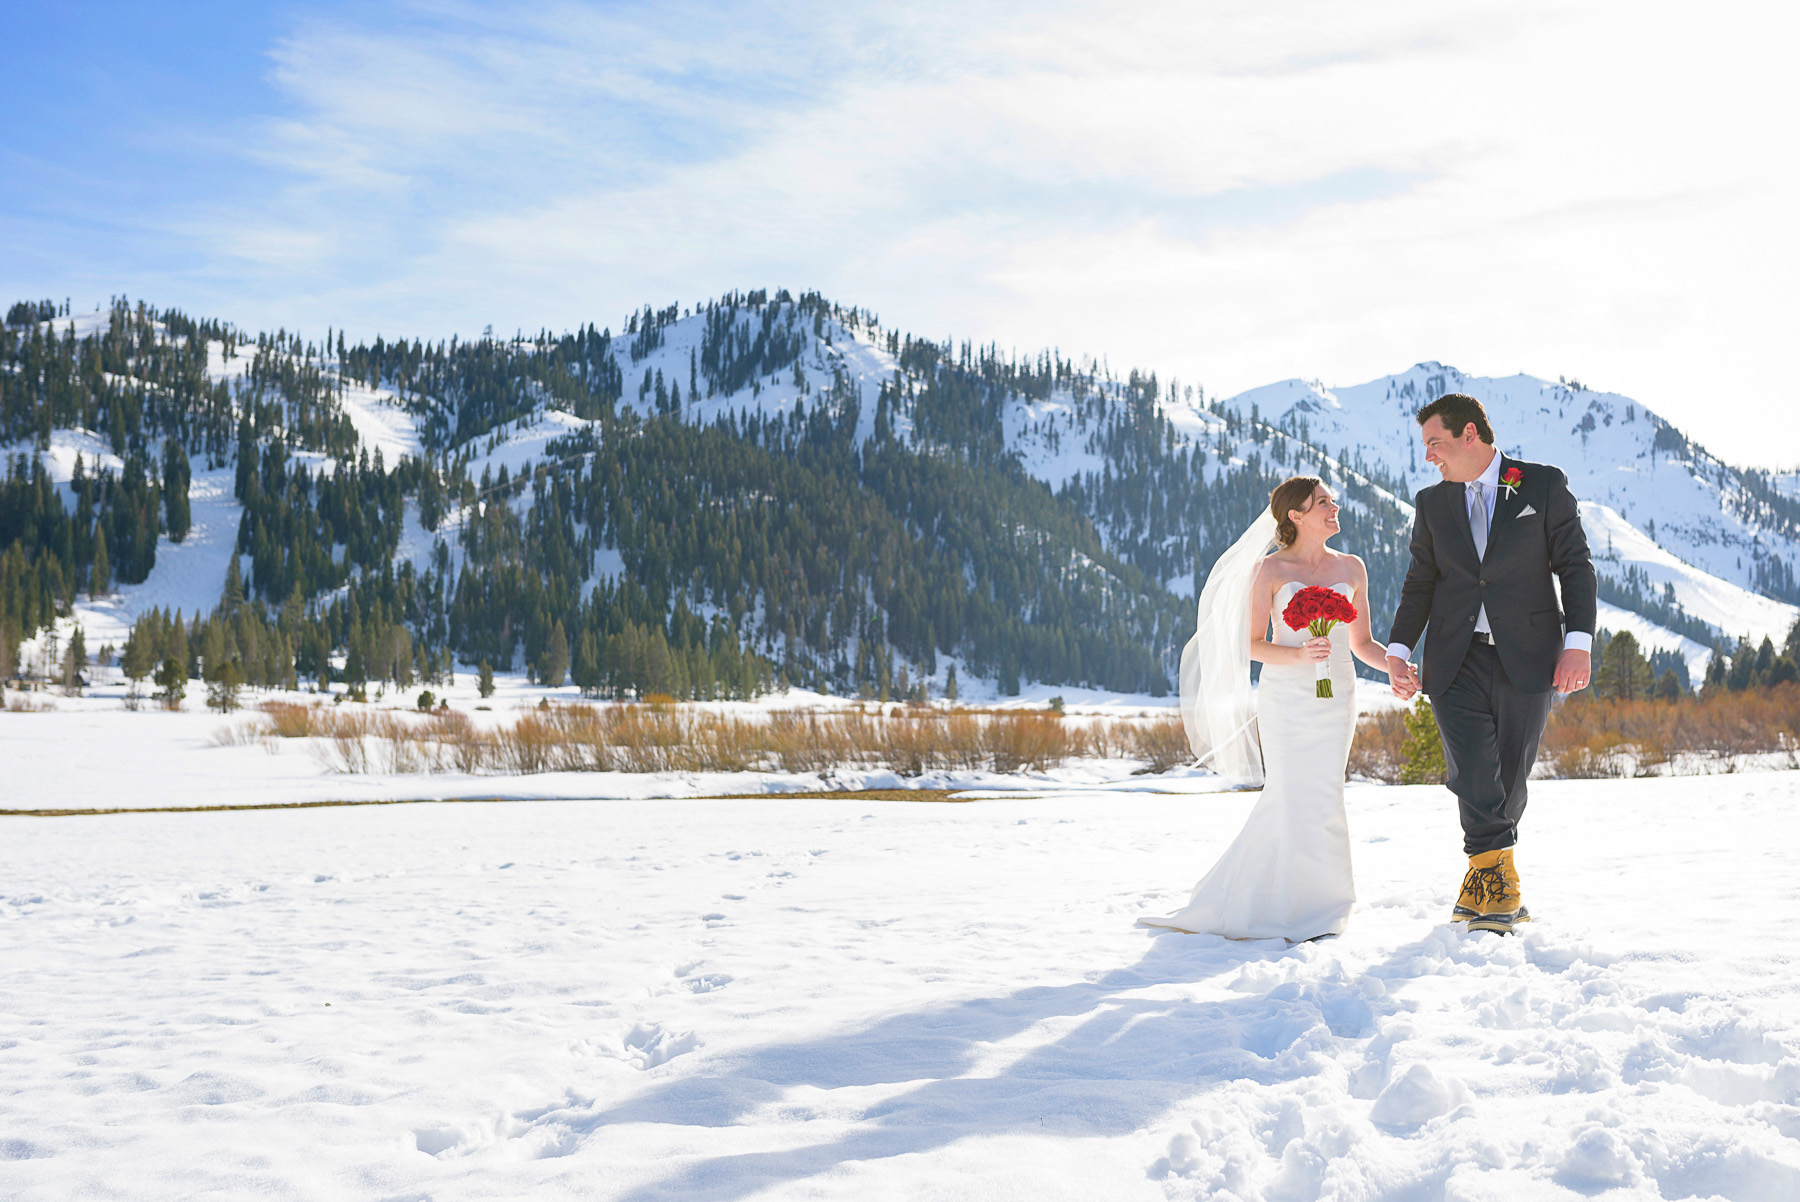 Squaw-Valley-wedding-7jpg.jpg